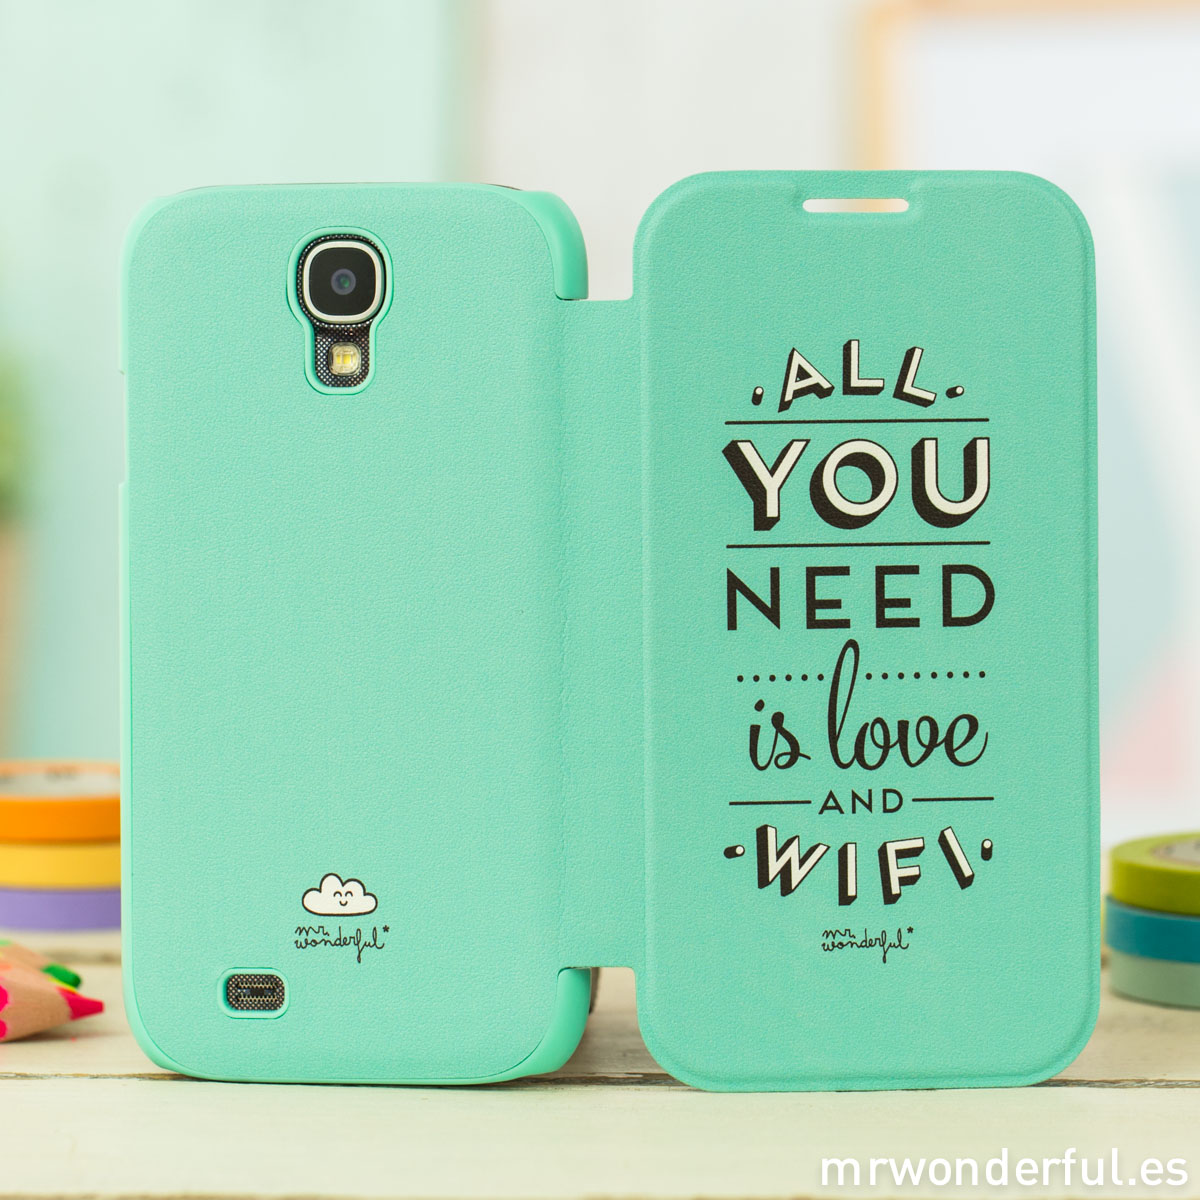 mrwonderful_MRFOL002_funda-mint-samsung-galaxy-S4_all-you-need-love-wifi-21